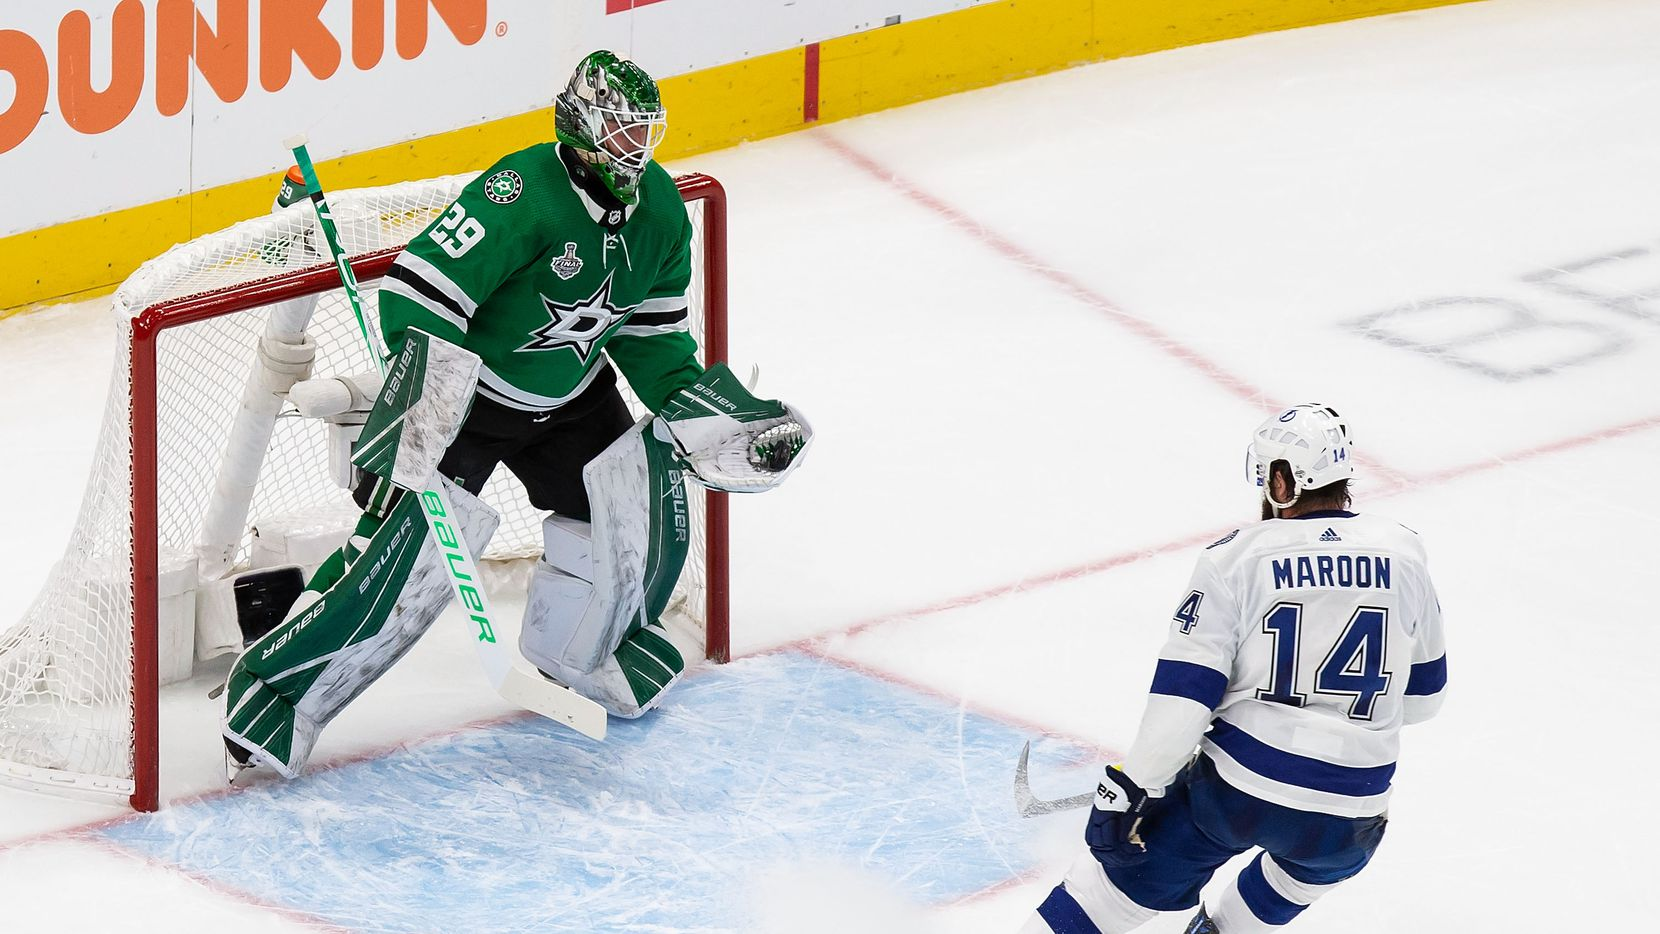 Goaltender Jake Oettinger (29) of the Dallas Stars makes a save against Pat Maroon (14) of the Tampa Bay Lightning during Game Three of the Stanley Cup Final at Rogers Place in Edmonton, Alberta, Canada on Wednesday, September 23, 2020.